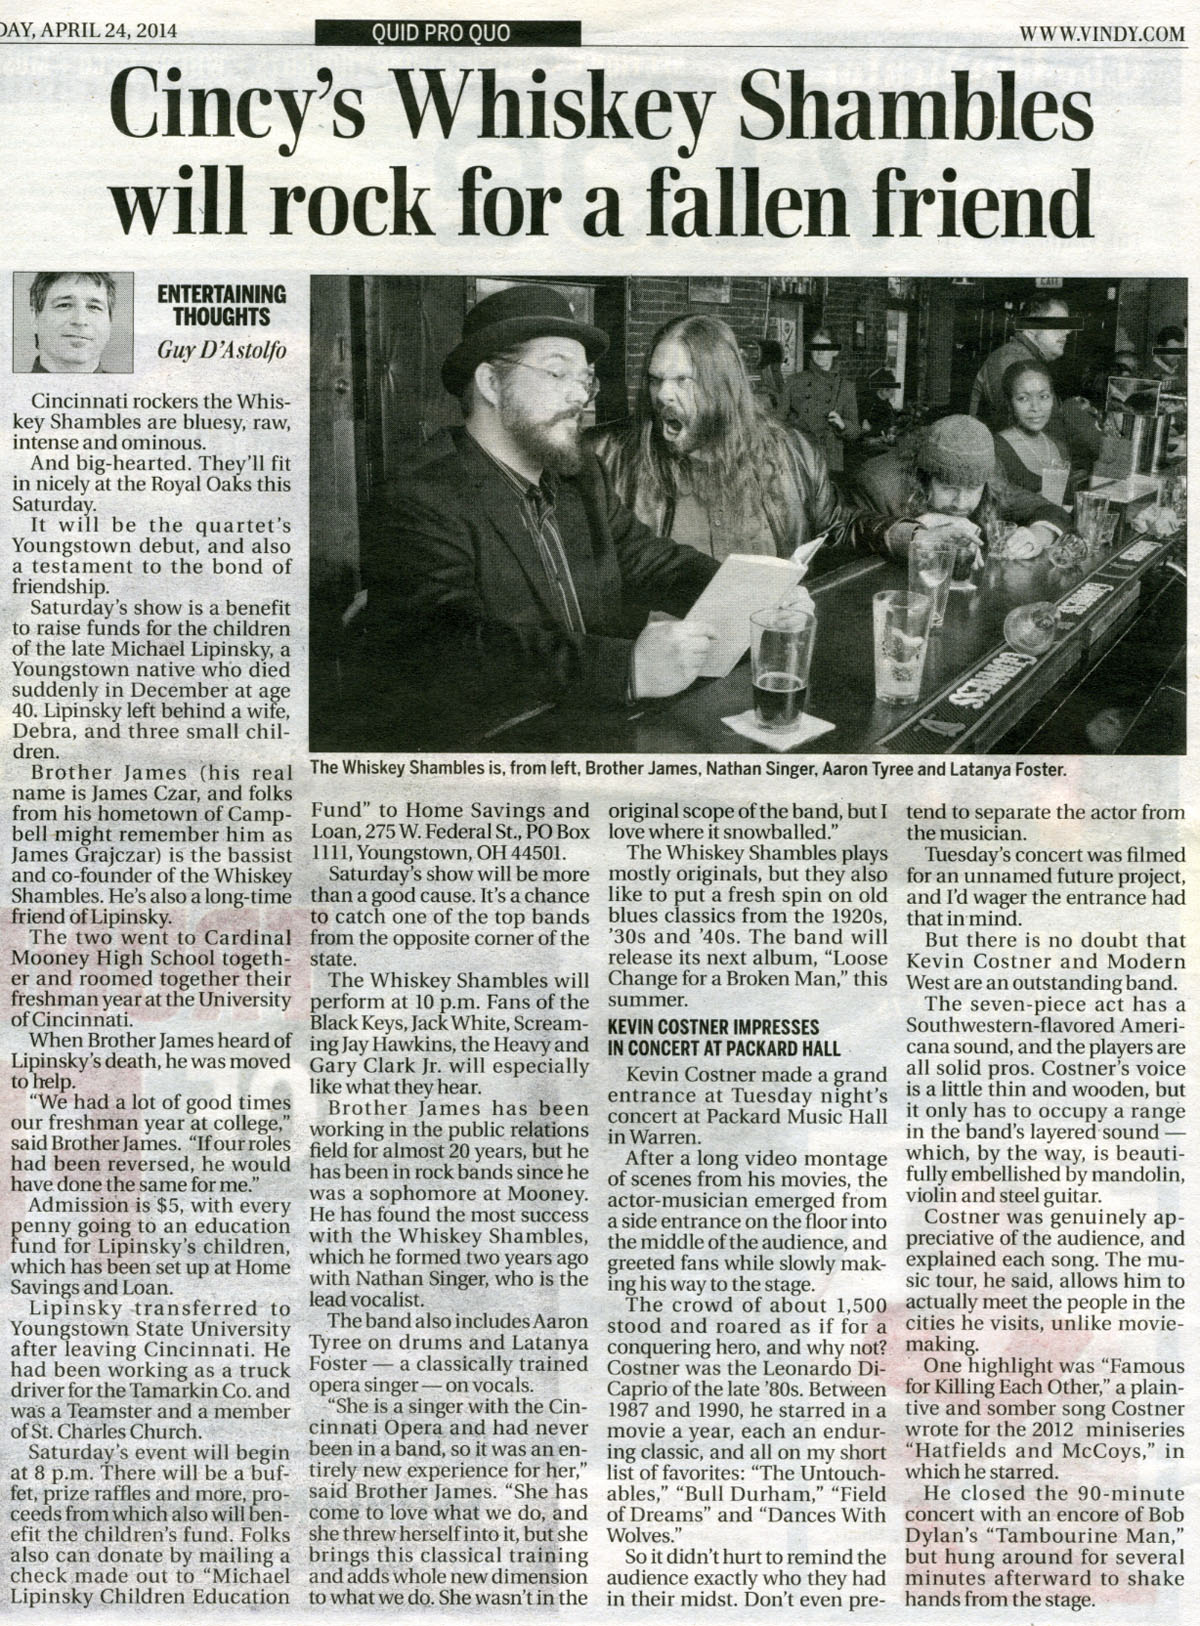 The Whiskey Shambles – 2014-04-24 Youngstown Vindicator article